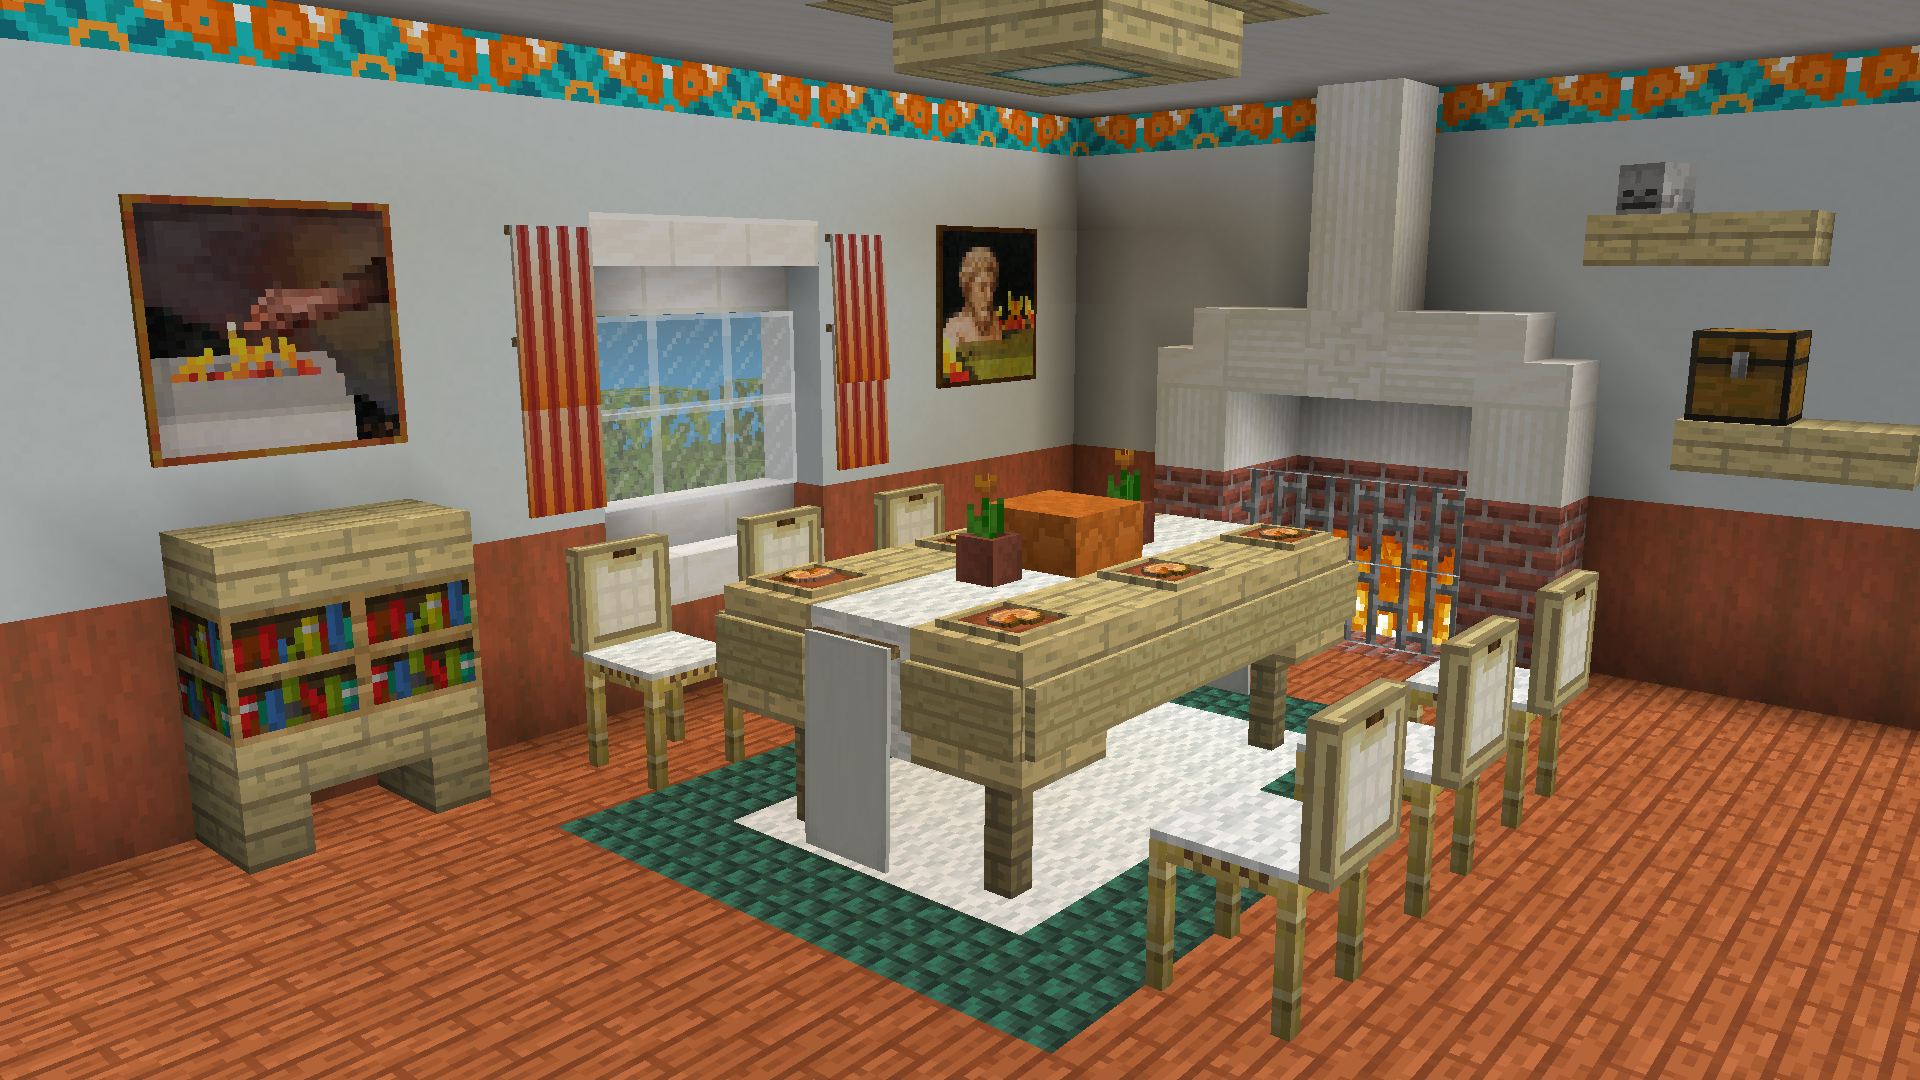 A Nice Little Dinner Room Minecraft Minecraft Decorations Minecraft Modern Minecraft Crafts